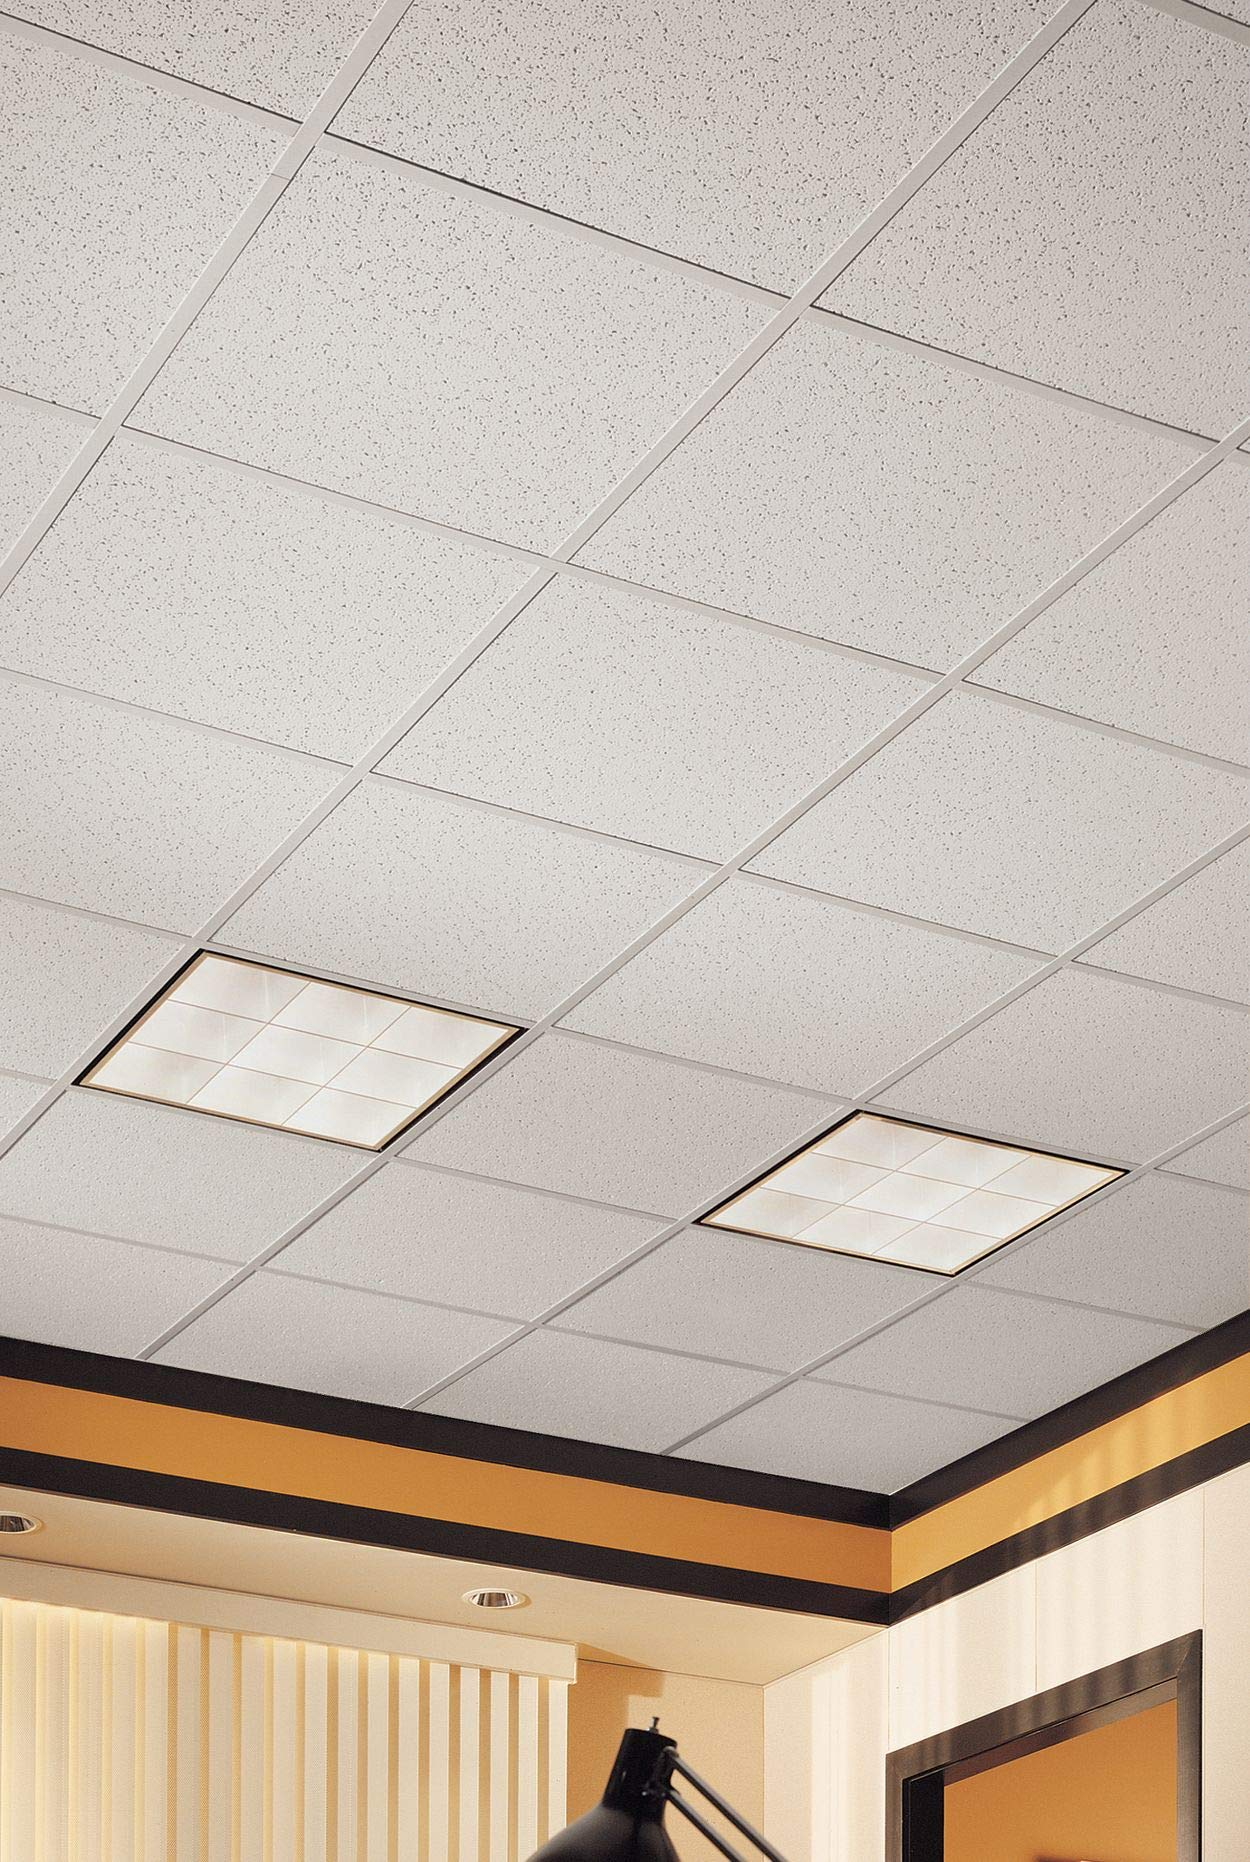 Armstrong Ceiling Tiles; 2x2 Ceiling Tiles - Acoustic Ceilings for Suspended Ceiling Grid; Drop Ceiling Tiles Direct from the Manufacturer; CORTEGA Item 770 – 16 pcs White Lay-in by Armstrong (Image #5)